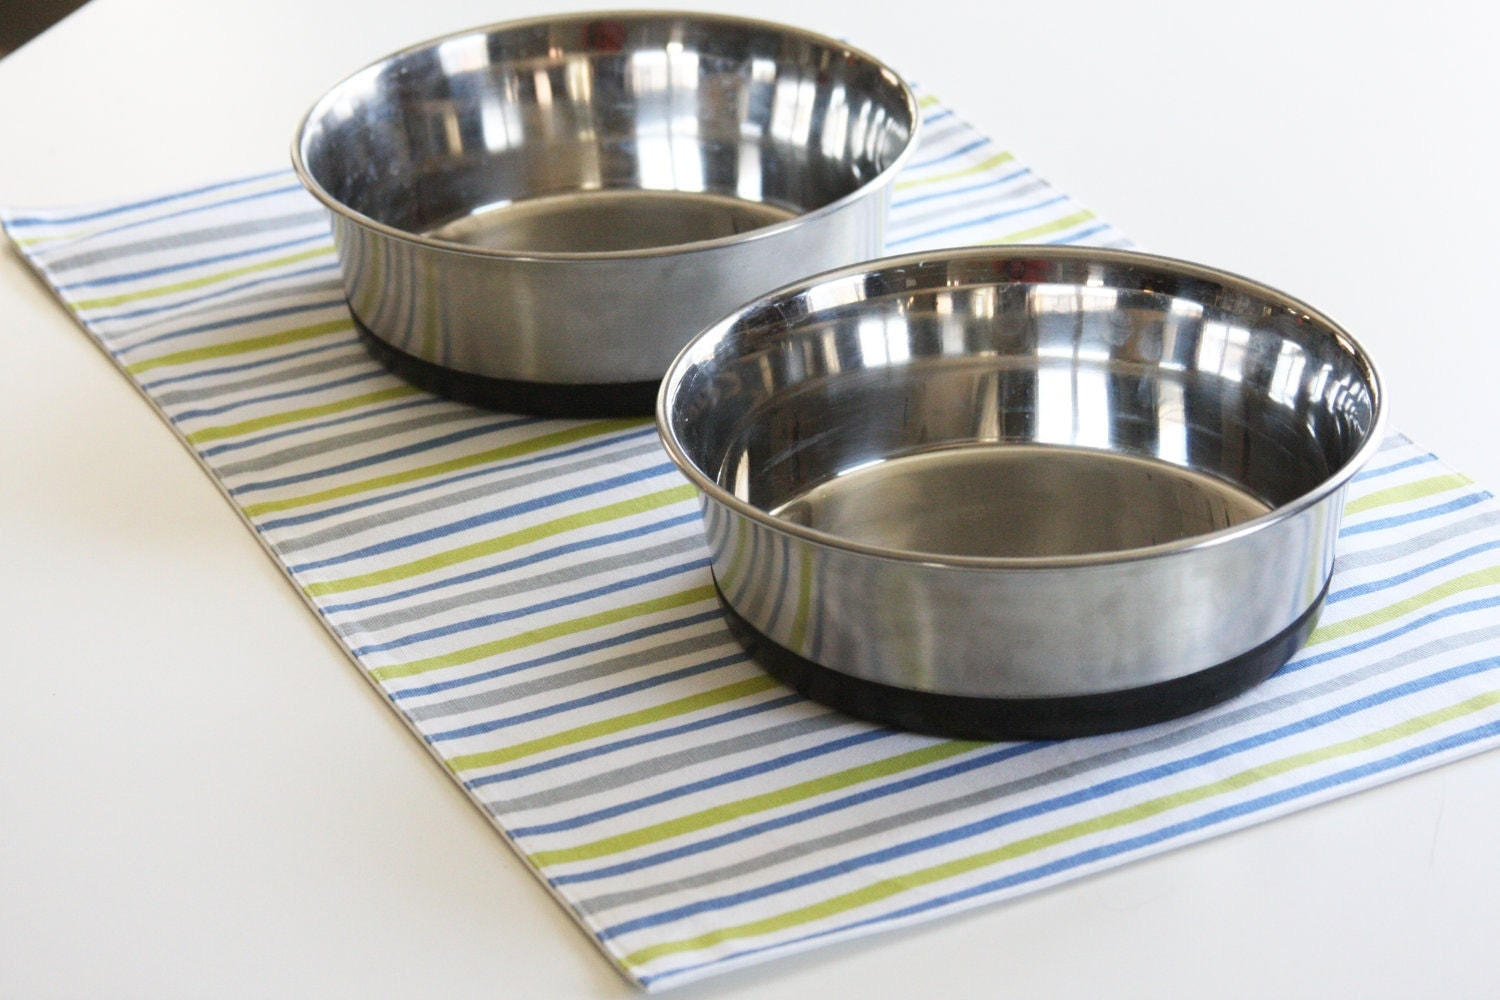 Large Pet-Mat (Placemat for your Dog's Bowl) Stripes: Large Size